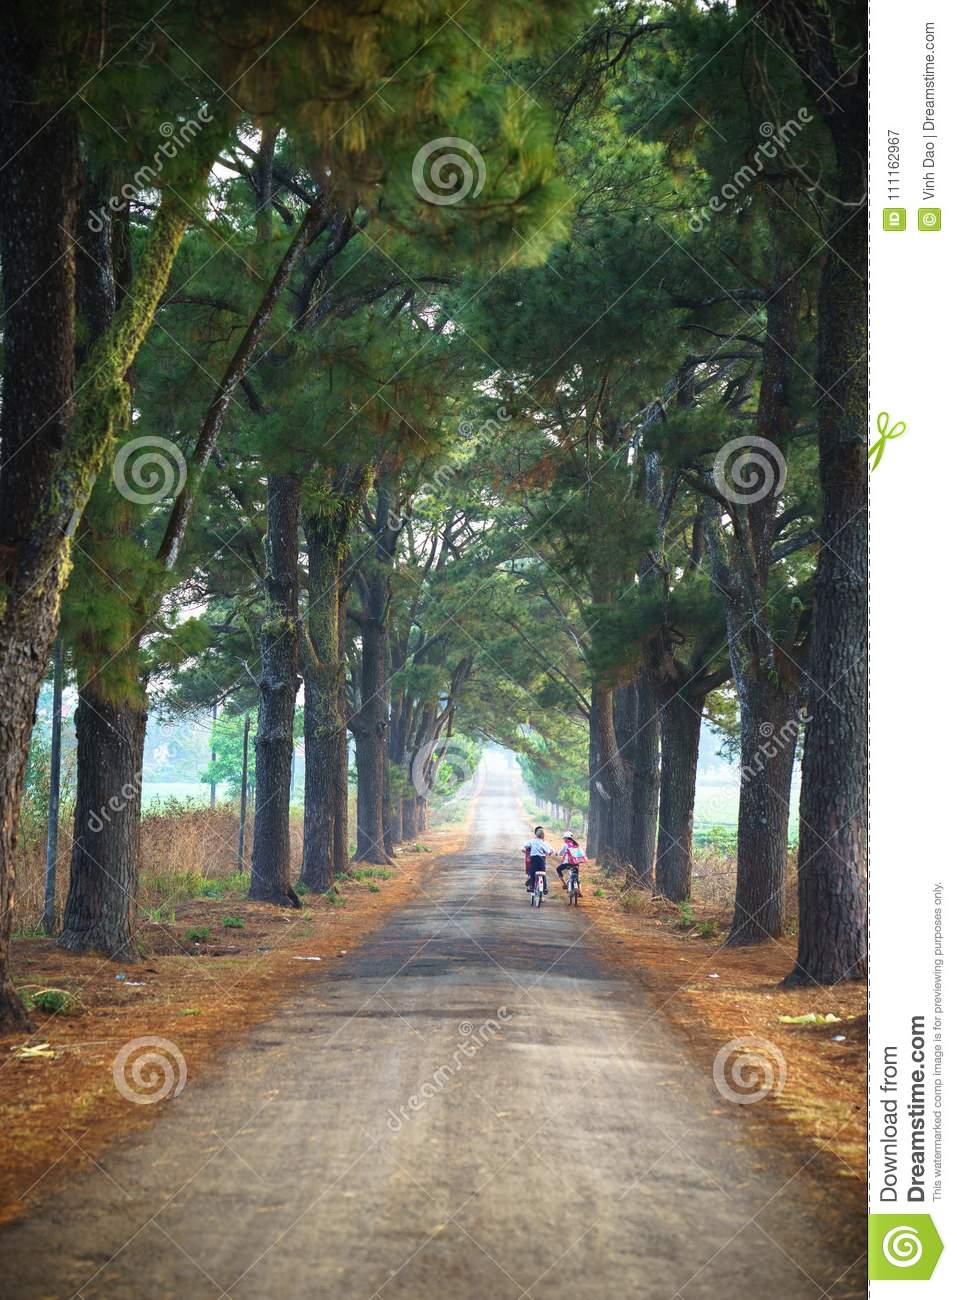 Vietnam countryside landscape with children cycling to school on soild road along lines of tree.